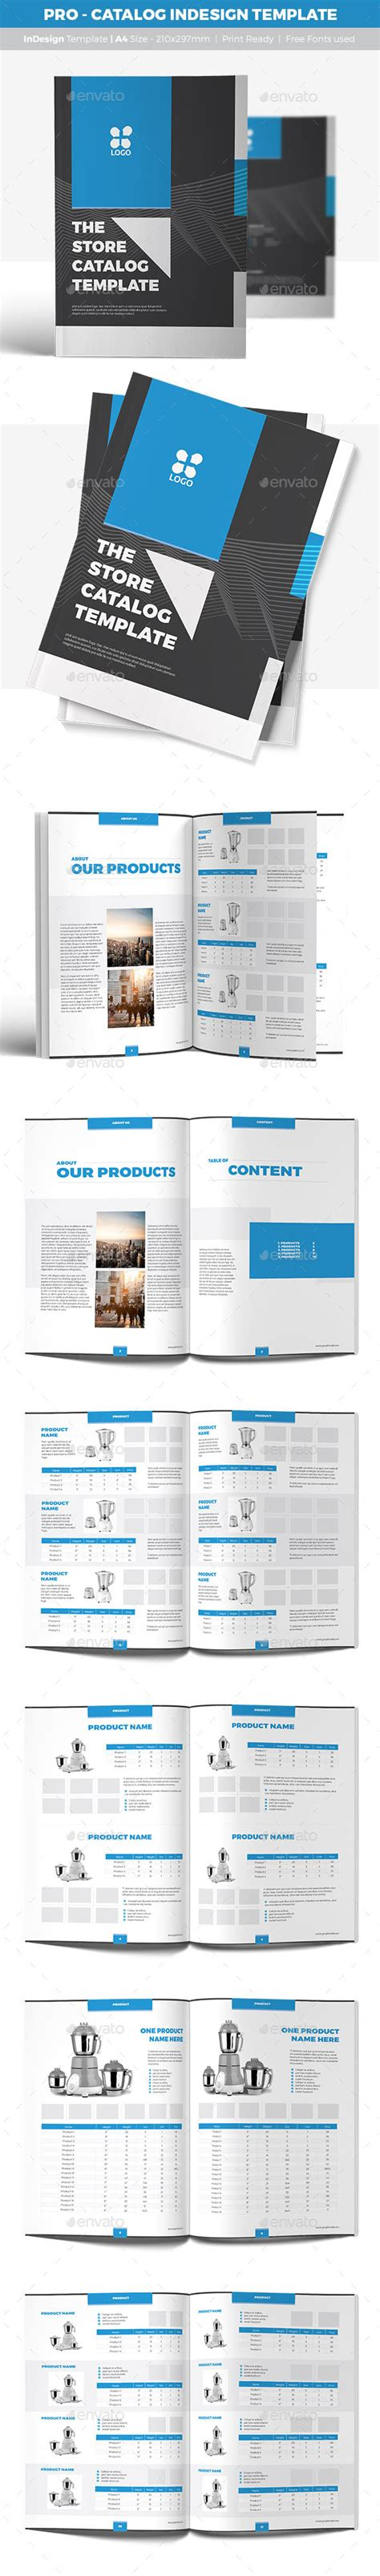 professional indesign templates pro catalog indesign template by s designers graphicriver